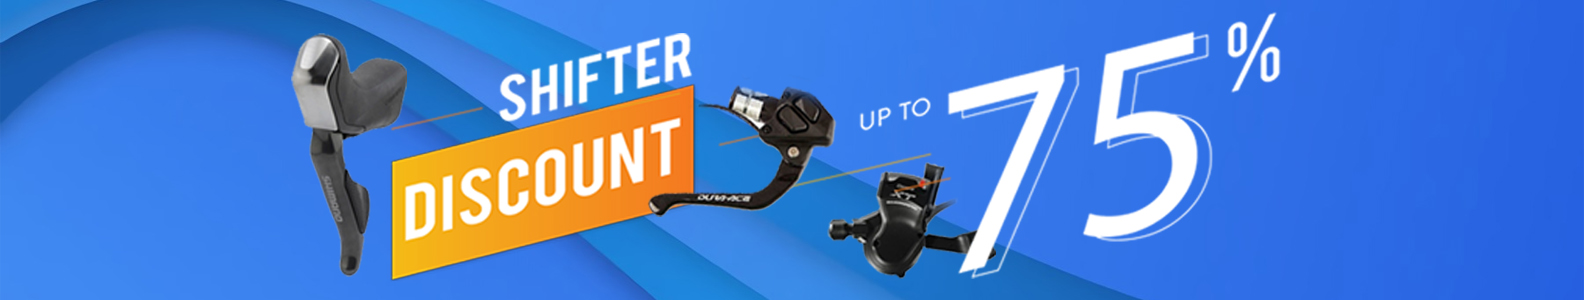 Shifter Discount Up To 75%